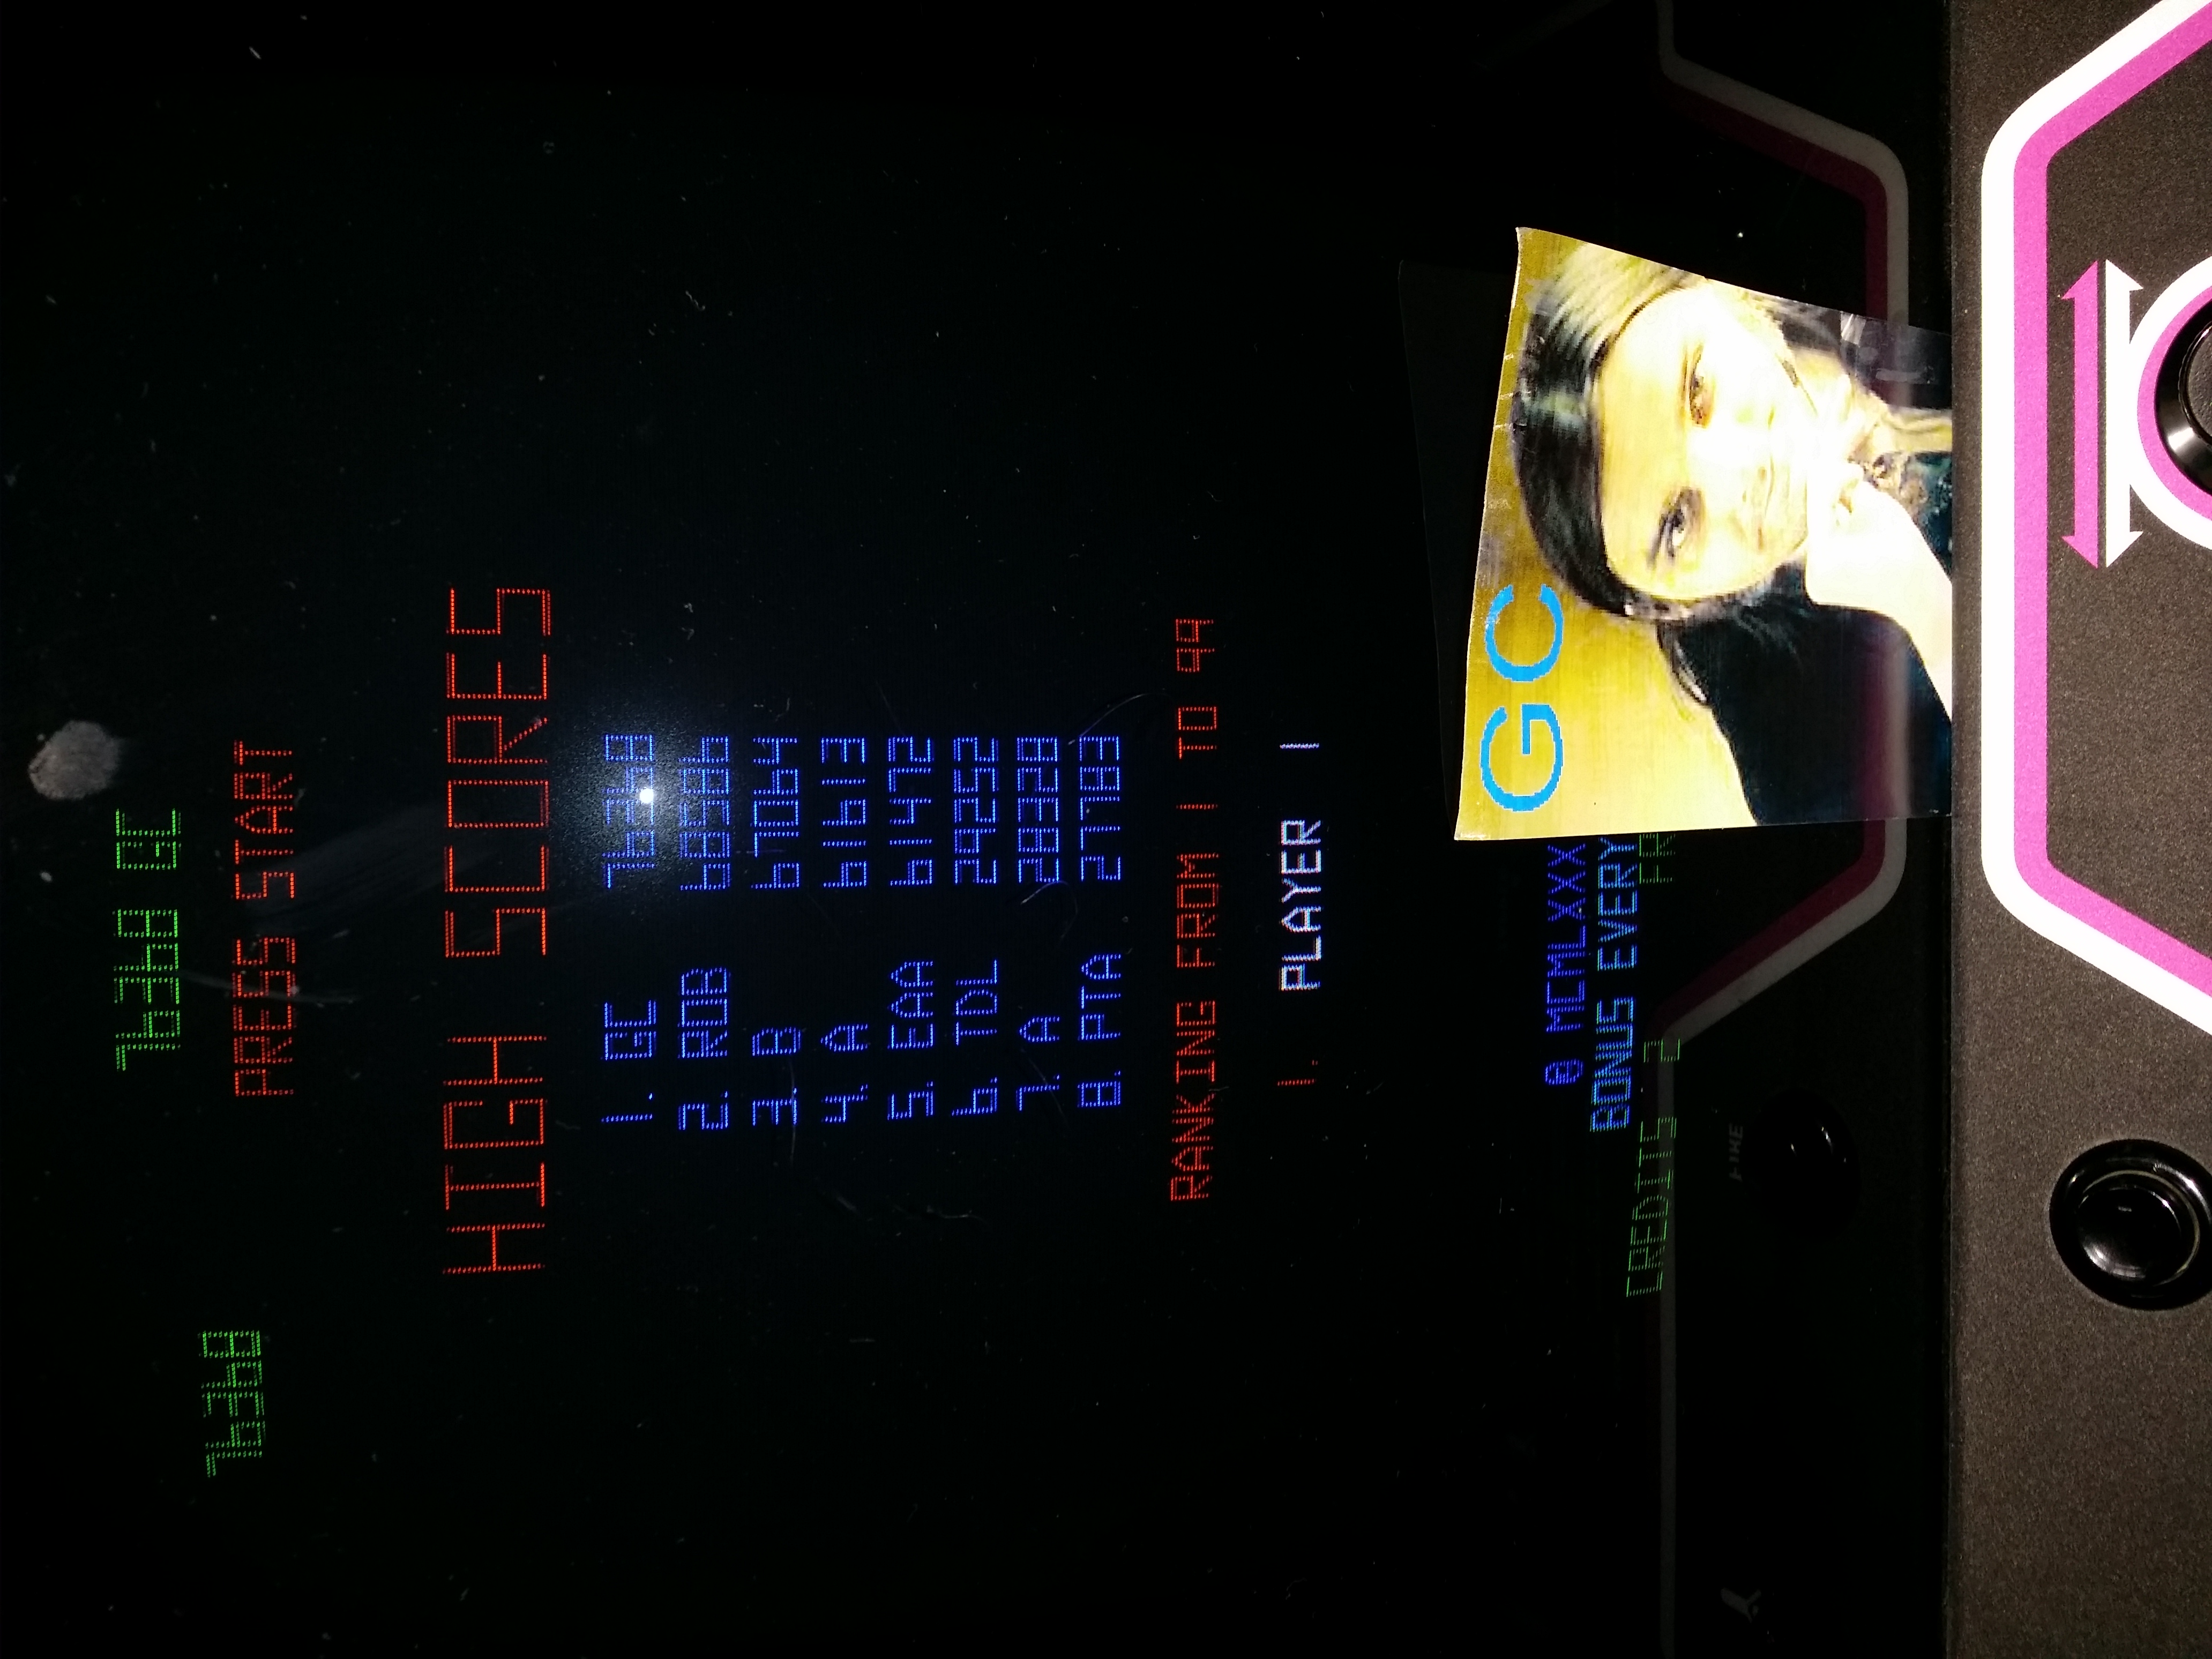 glenncase: Tempest (Arcade) 76,368 points on 2014-10-20 00:30:59